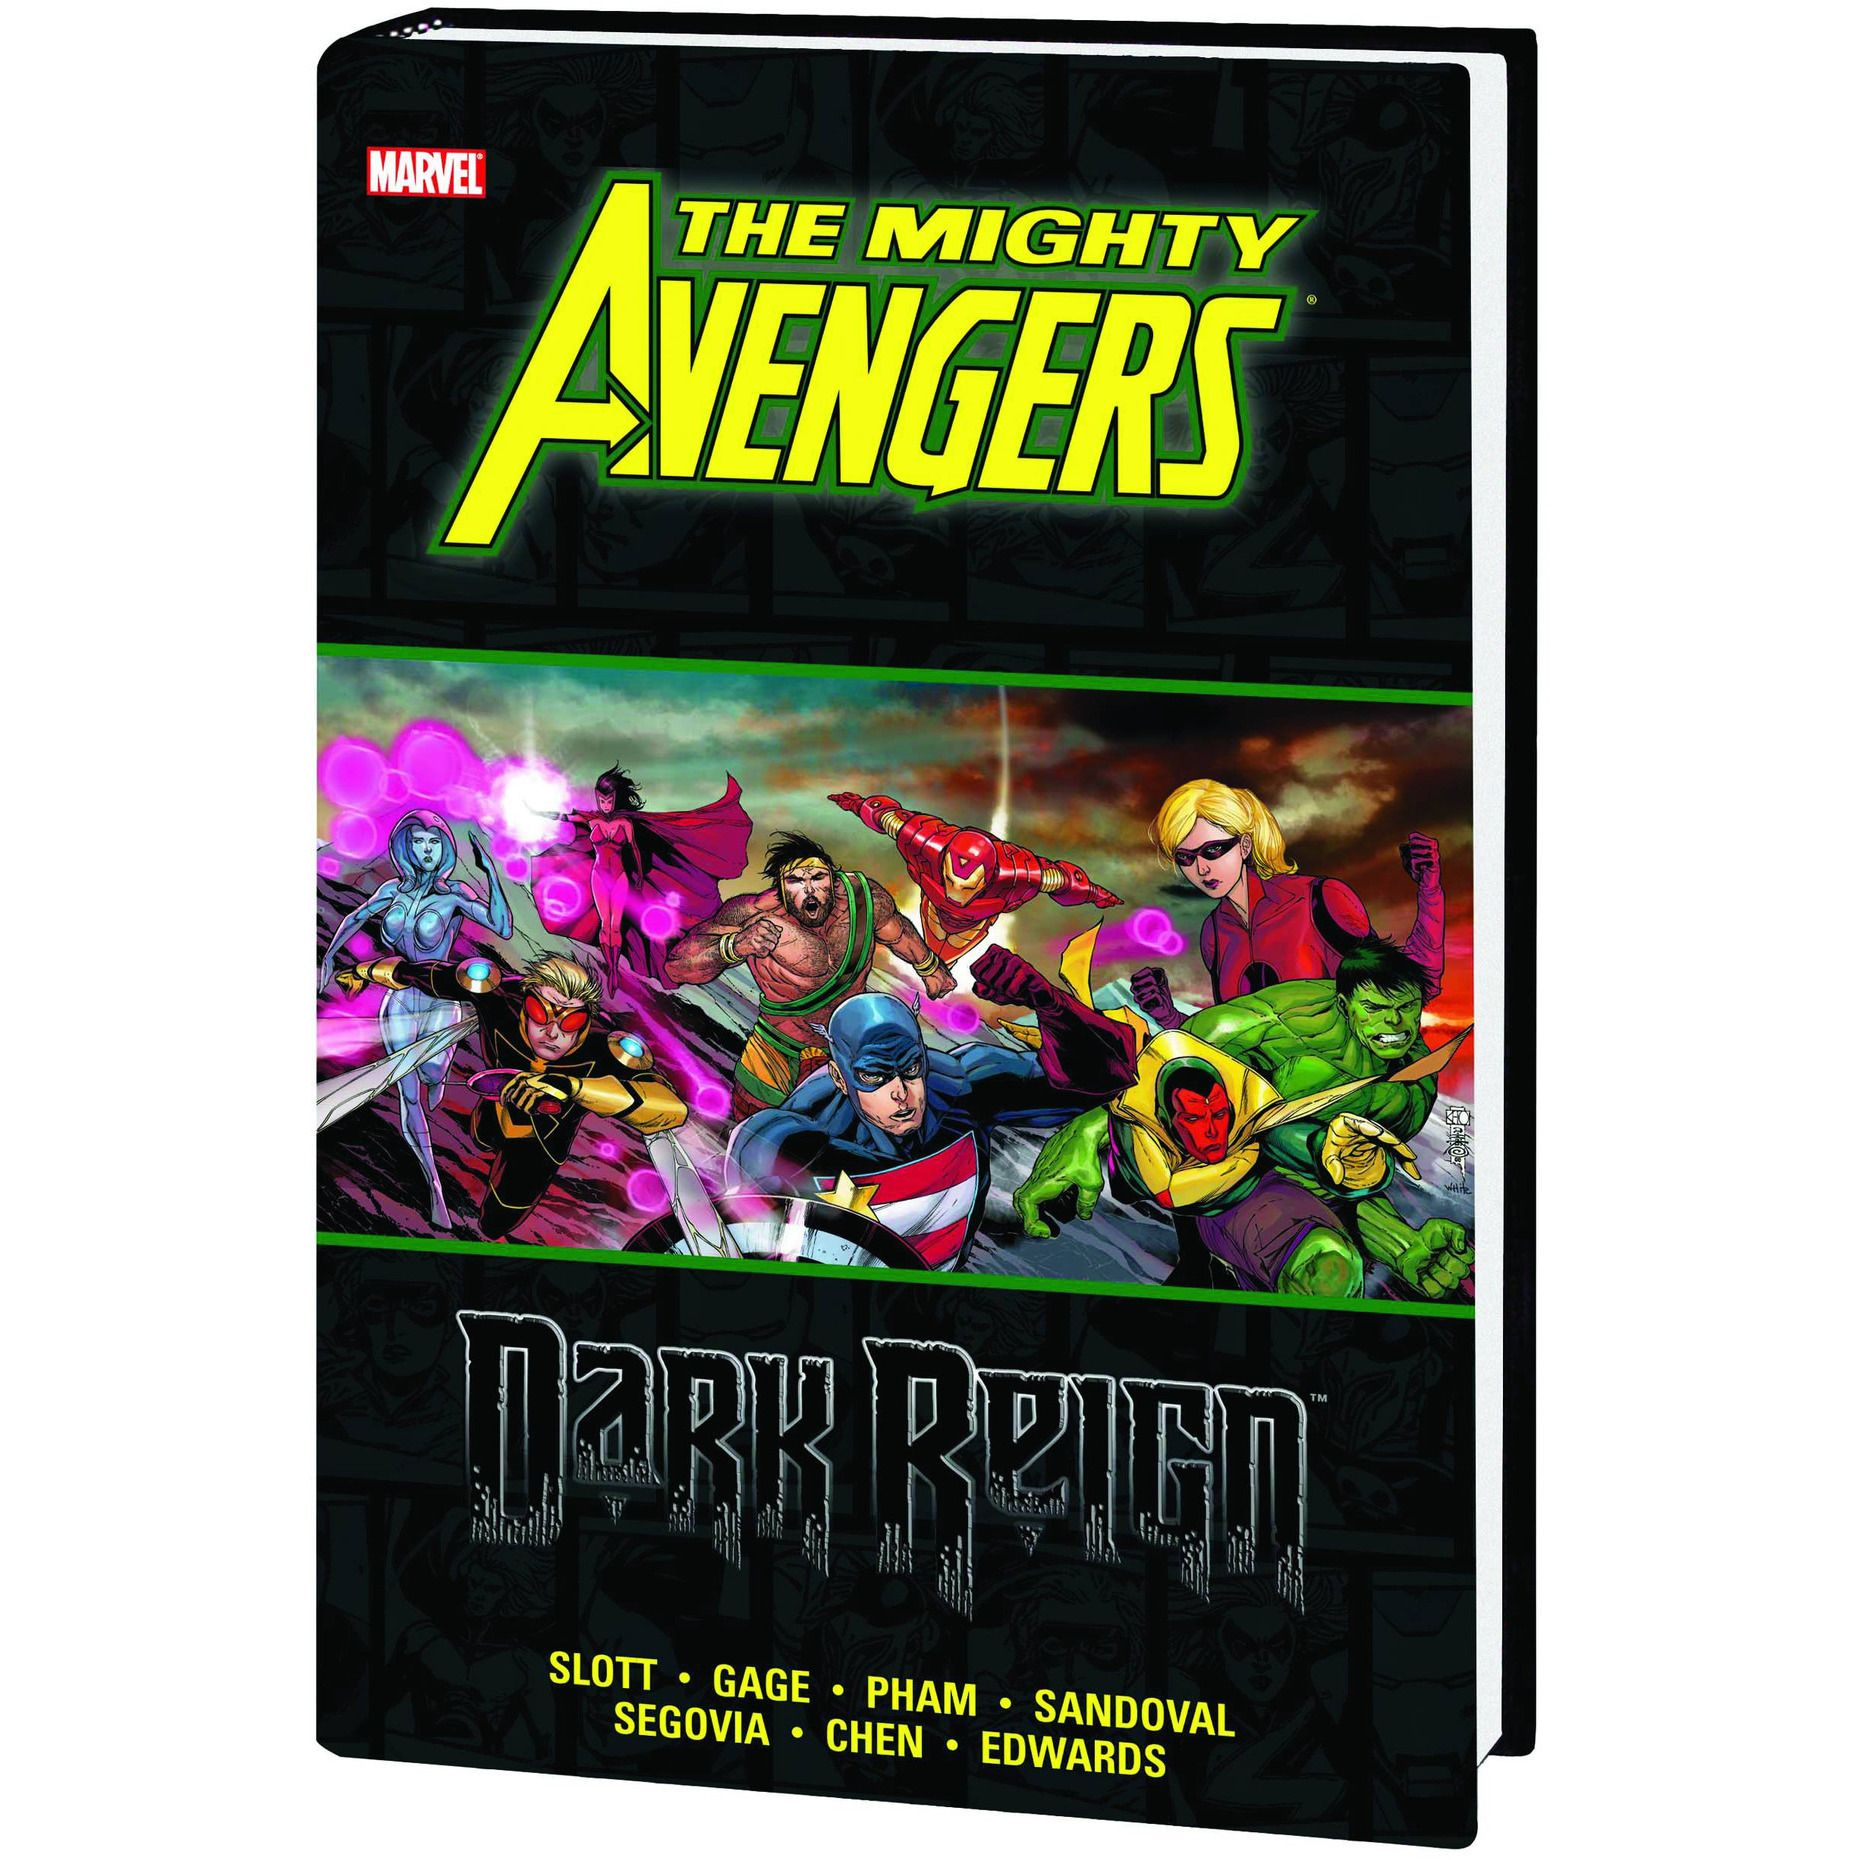 The Mighty Avengers: Dark Reign HC Uncanny!